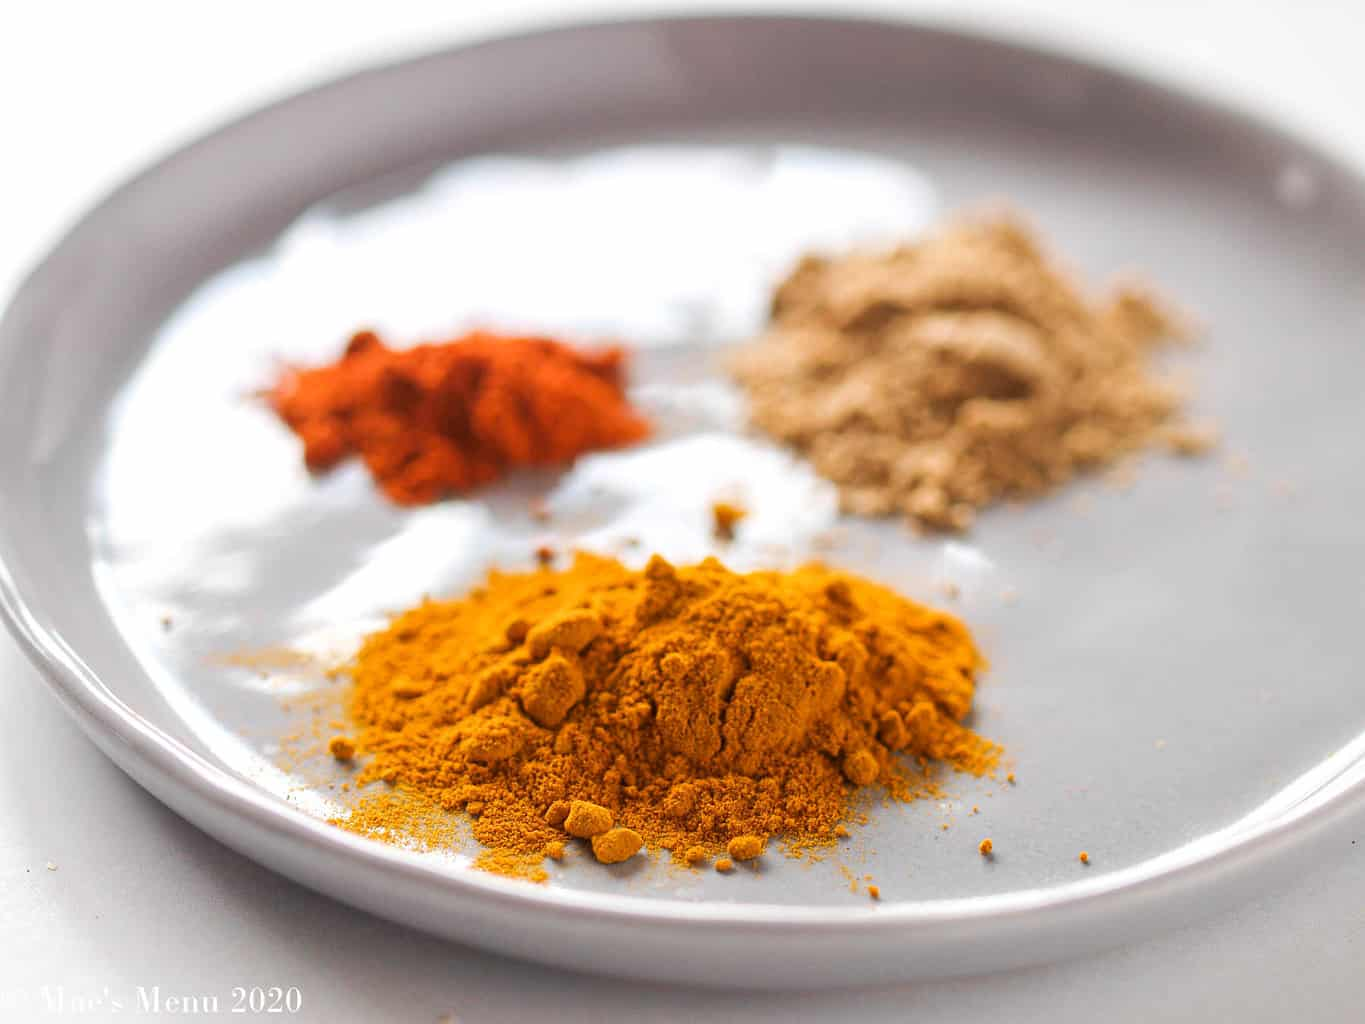 The dried spices for the peanut butter chicken: turmeric, ground red pepper, and coriander